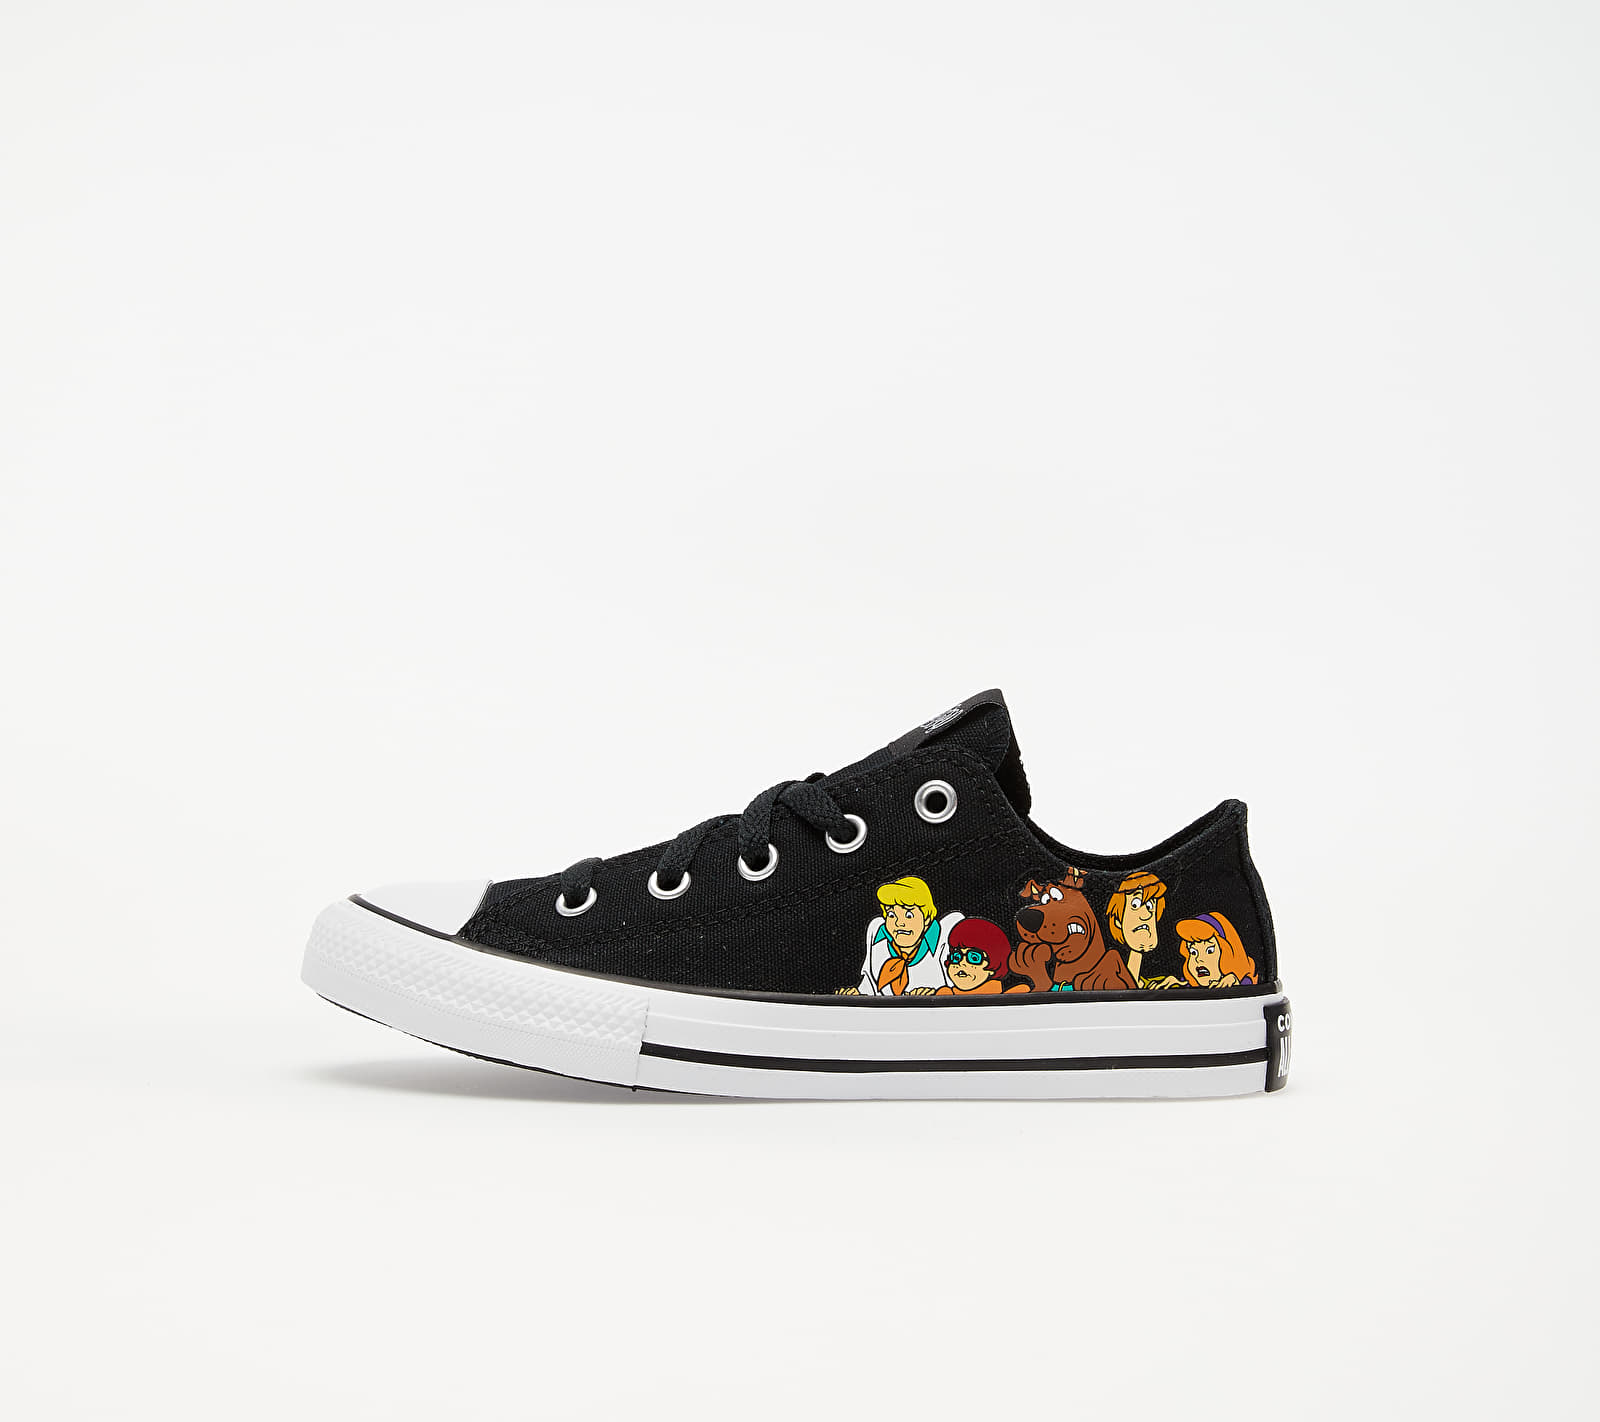 Converse x Scooby-Doo Chuck Taylor All Star Ox Black/ Multi/ White EUR 30